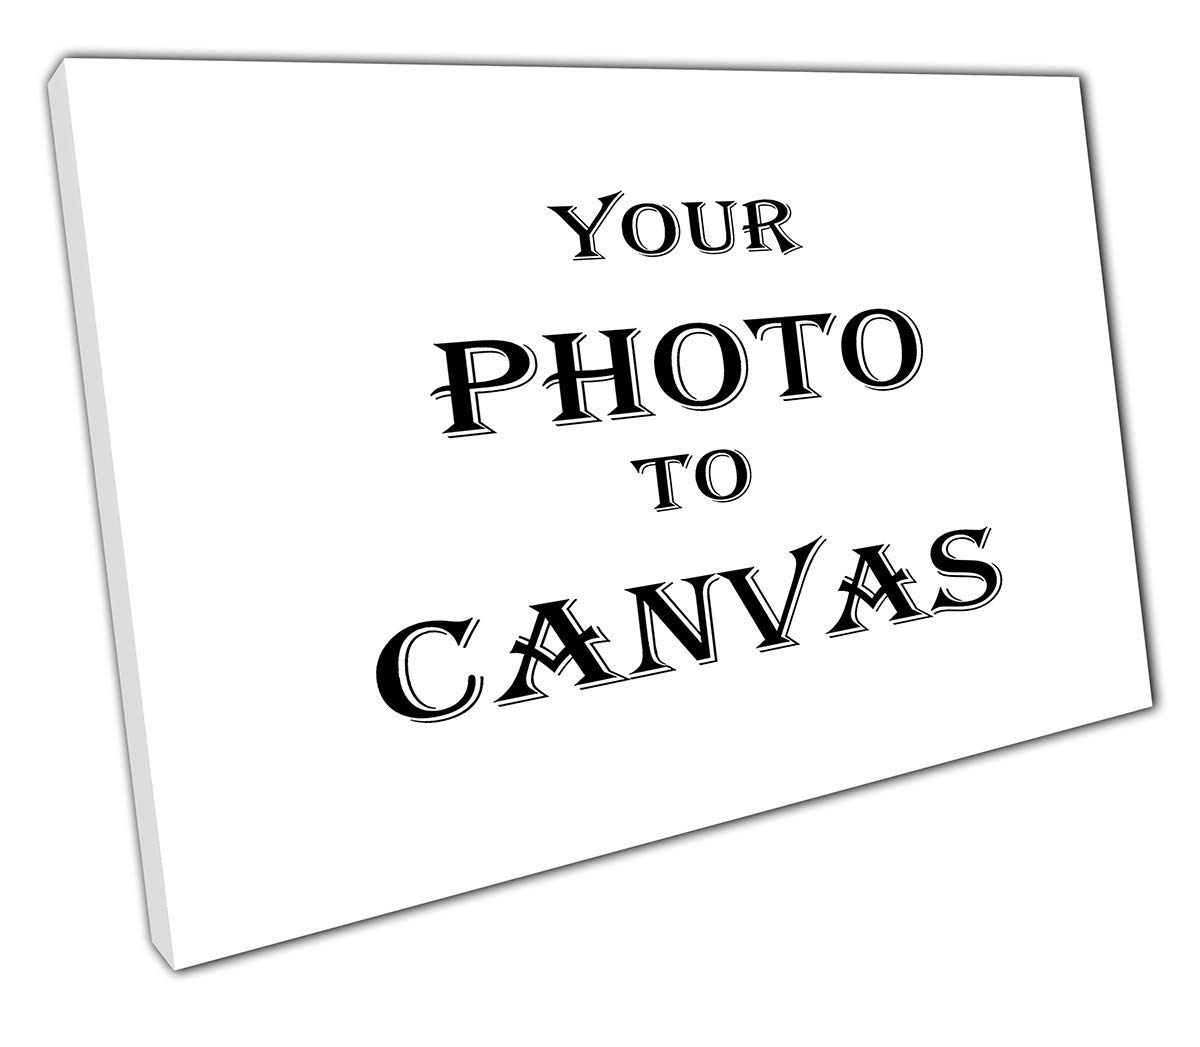 EACanvas PRINT ON CANVAS PICTURE PHOTO TO CANVAS PERSONALISED 20MM READY TO HANG 60 X 40CM - A2 EvolutionArt